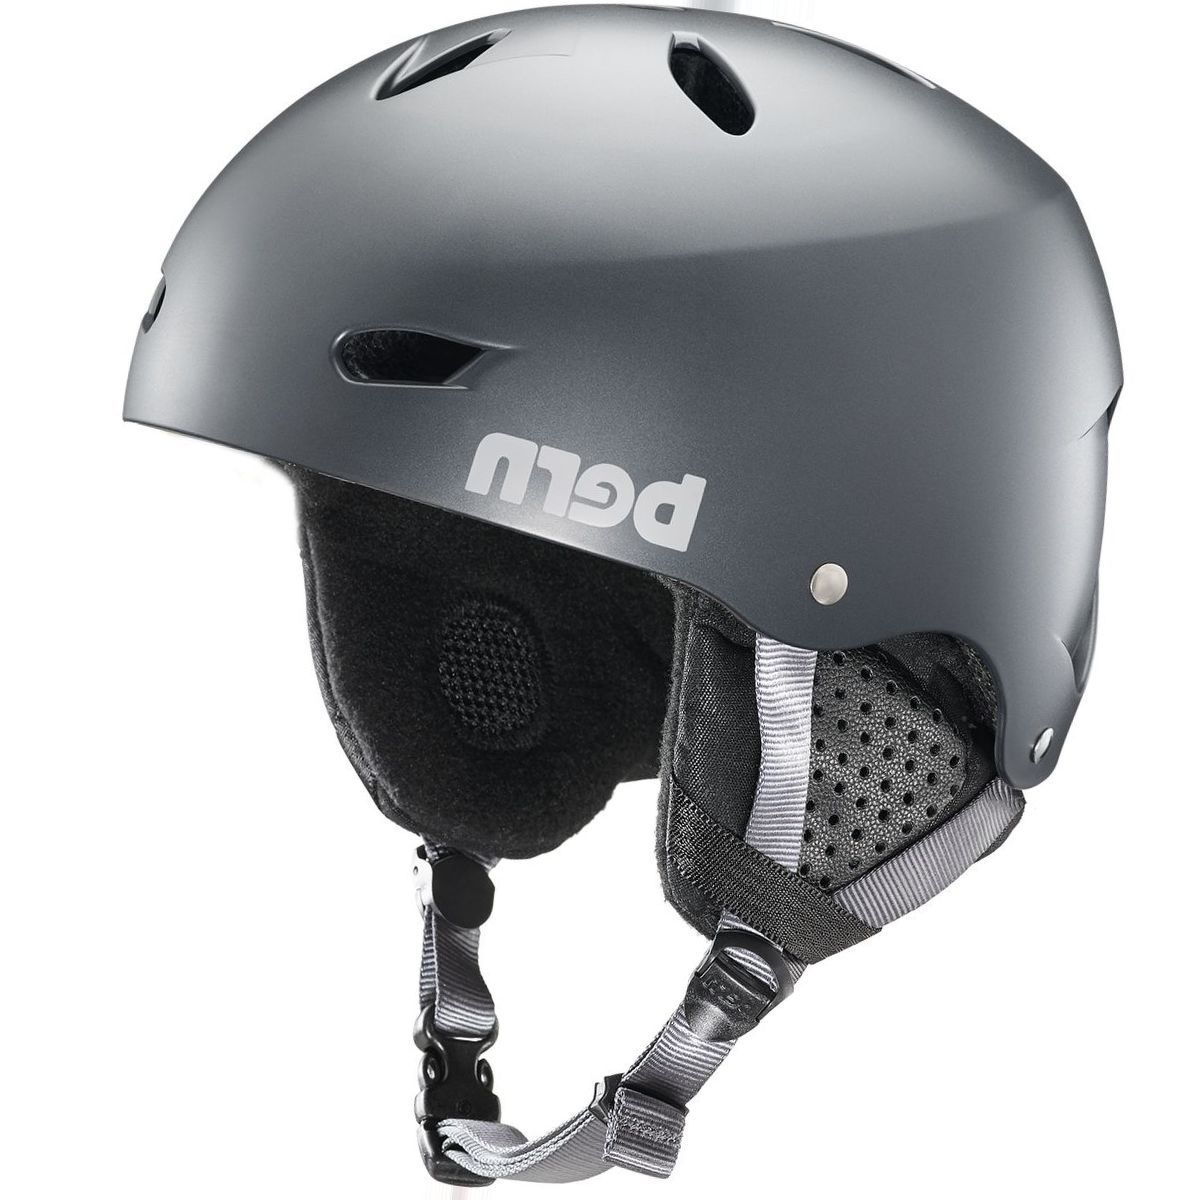 11 Inexpensive Snowboard Helmets & Goggles for women in 2019